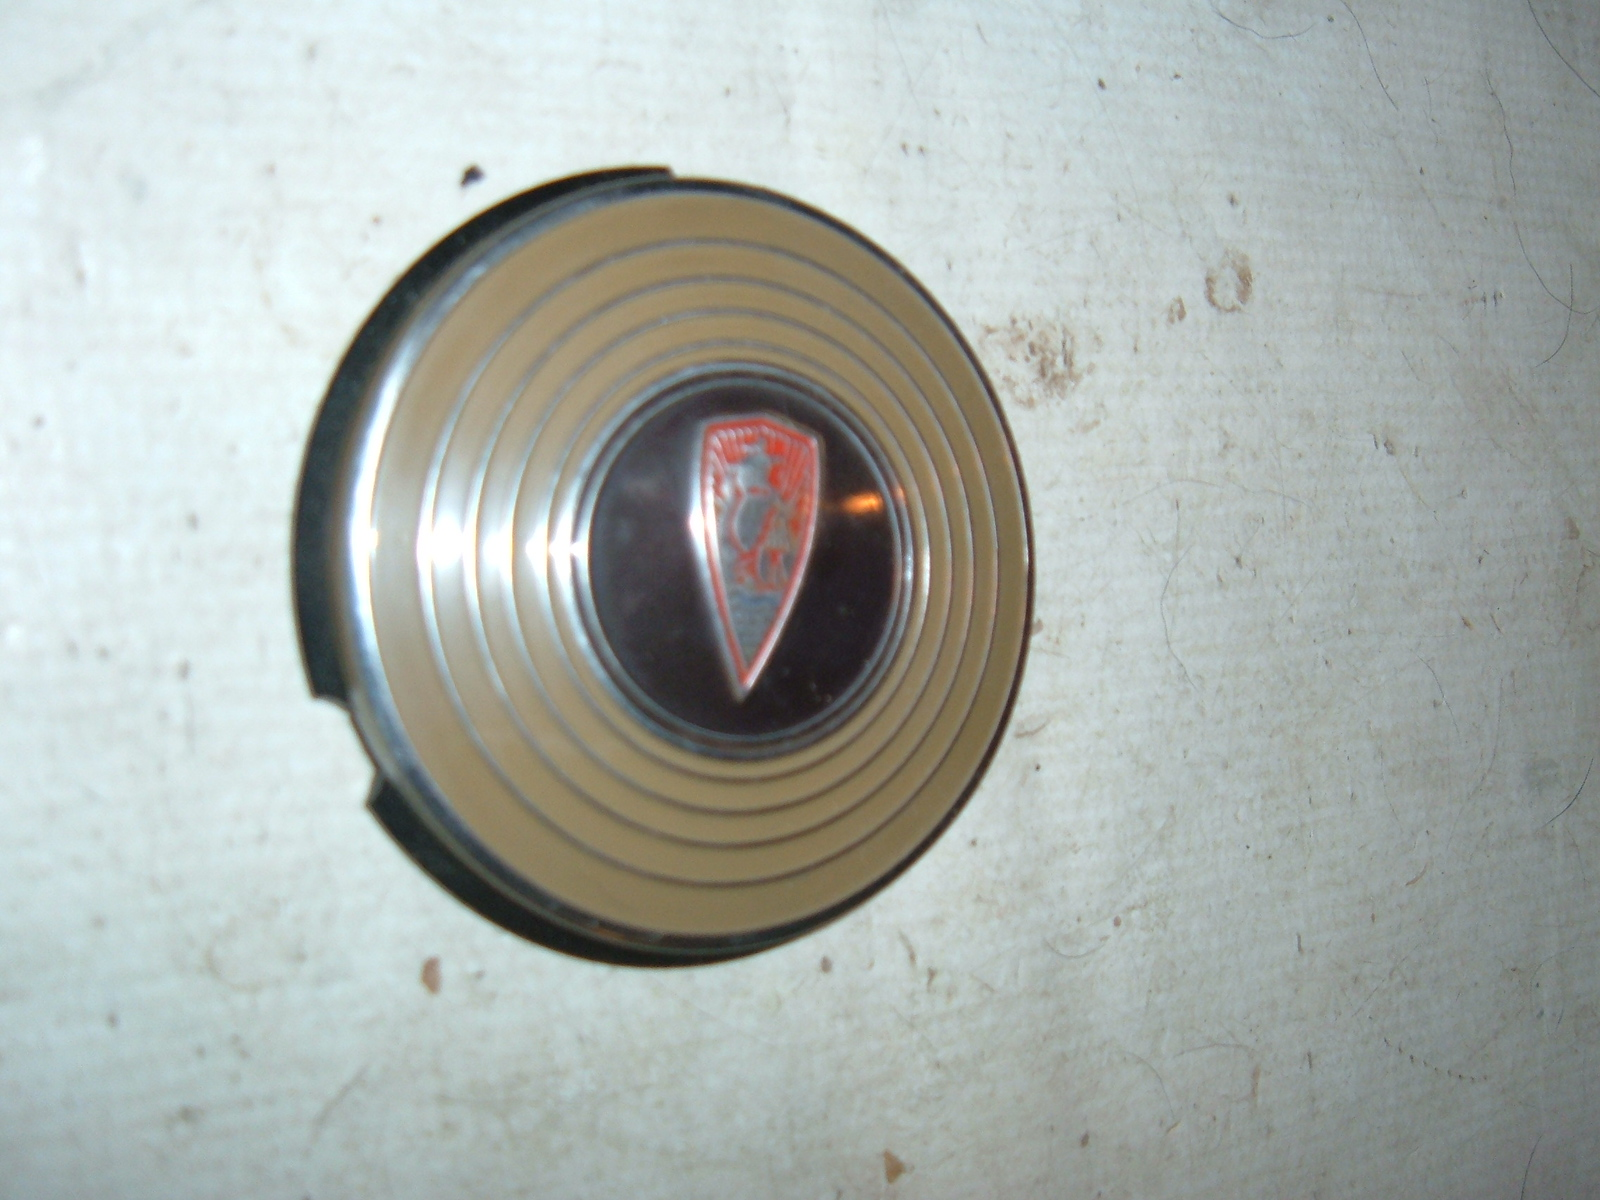 1940 plymouth horn button mos mopar # 854912 (z 854912)